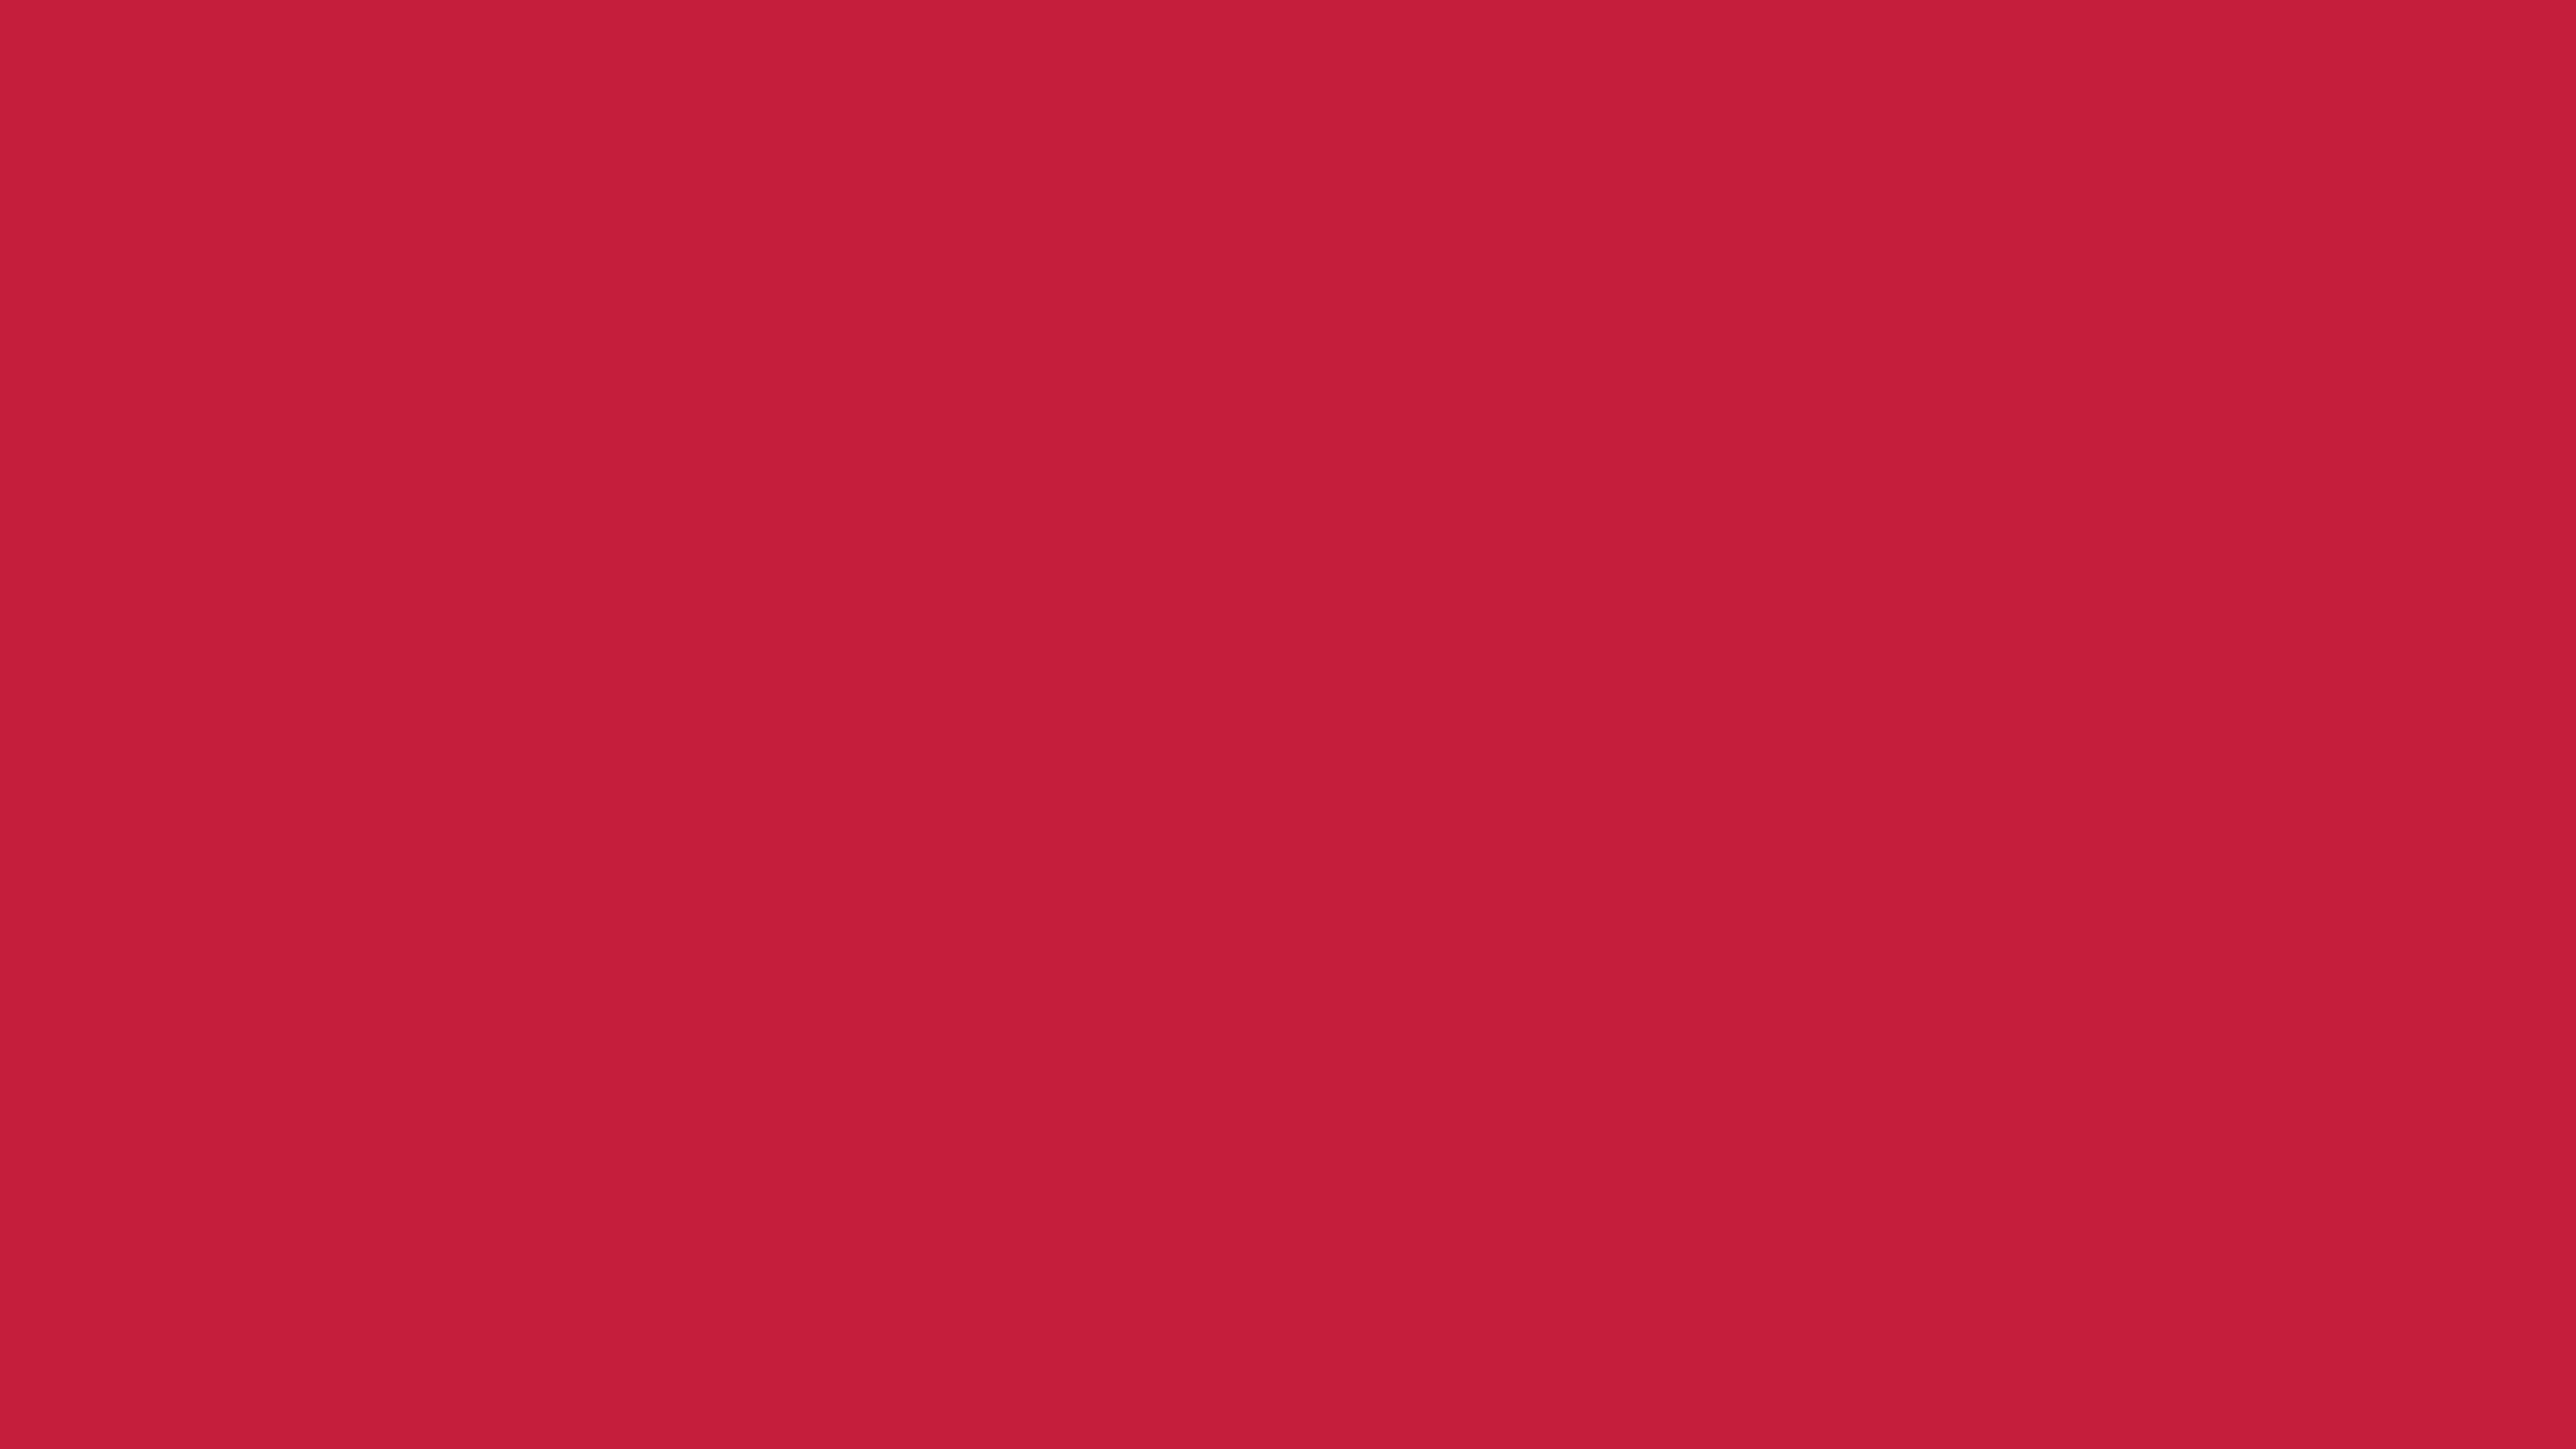 7680x4320 Cardinal Solid Color Background